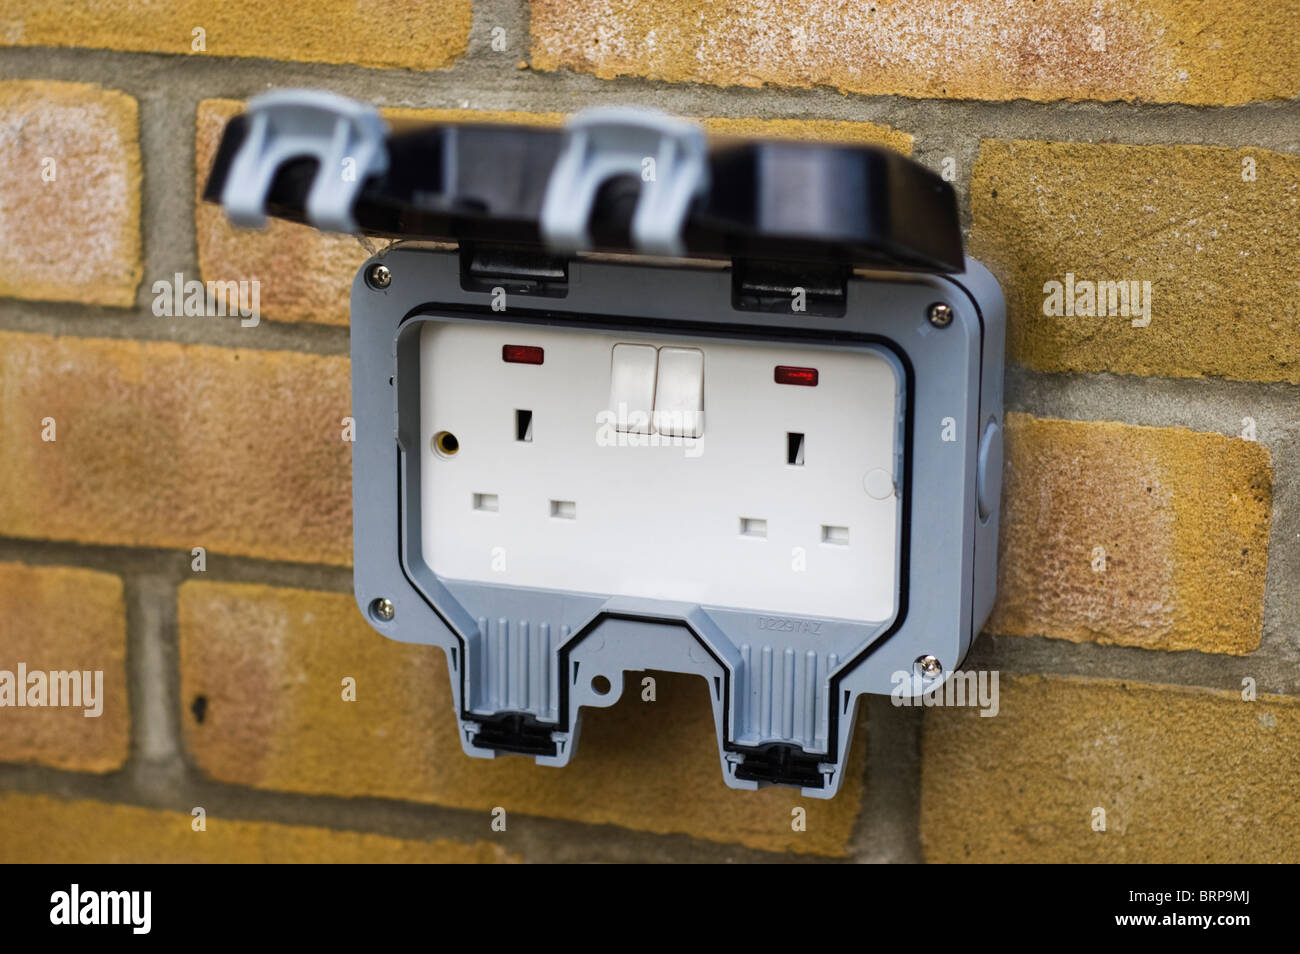 how to add a power outlet in brick wall